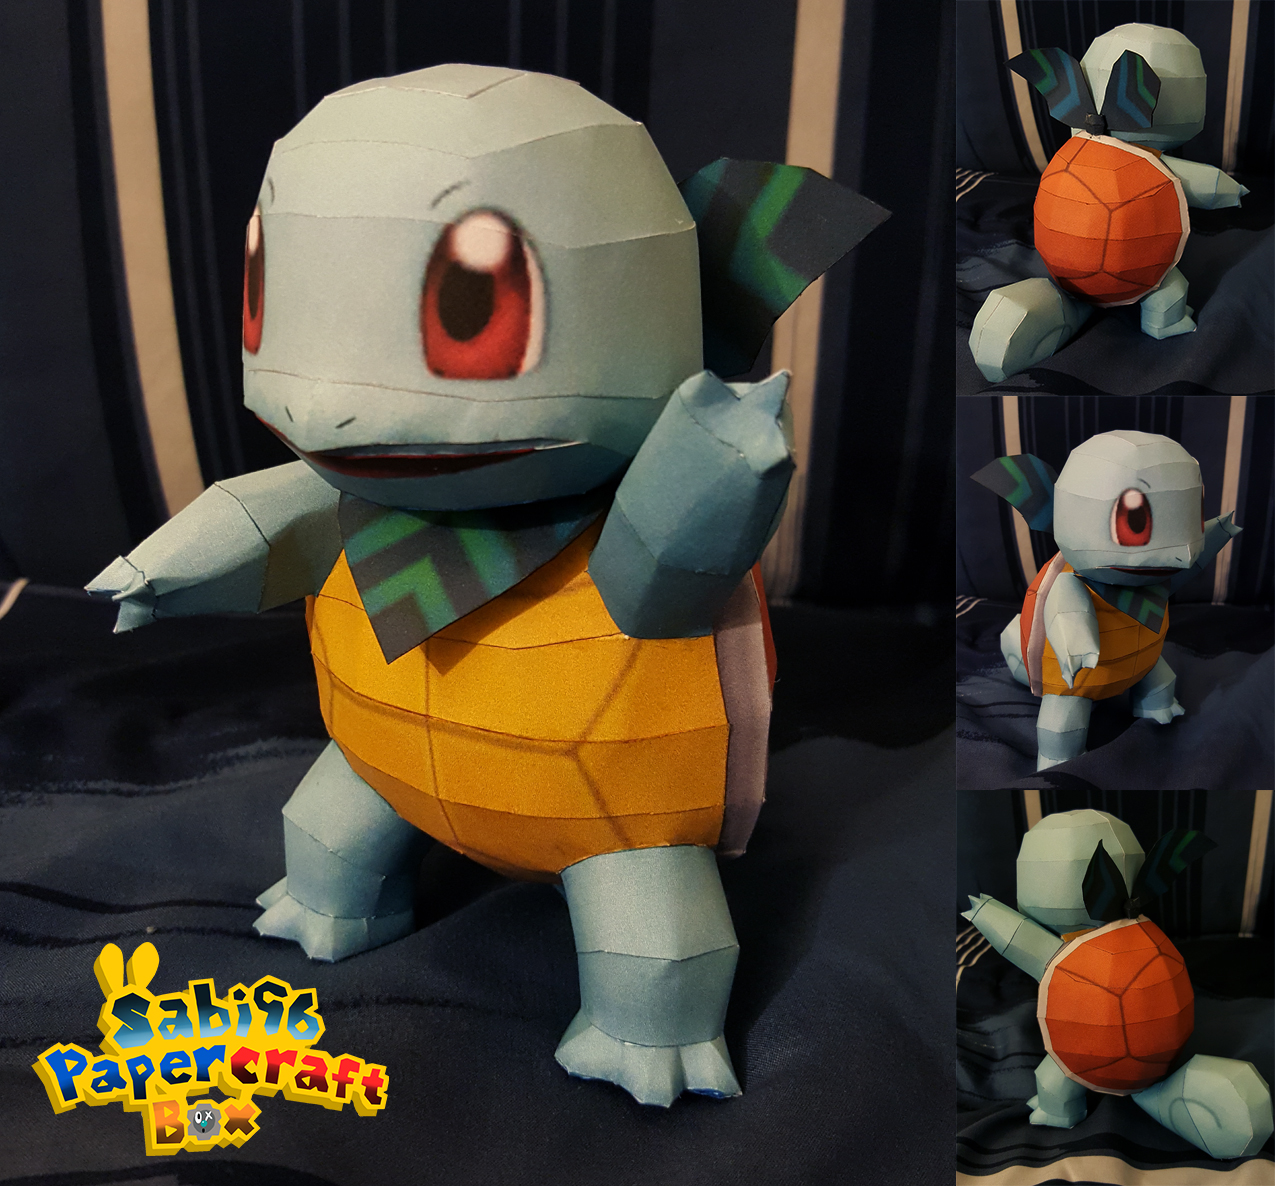 Papercraft Paradise Papercrafts Paper Models Card Origami Katana Japanese Sword Tutorial With Diagram Diy Henry Pokemon Mystery Dungeon Squirtle